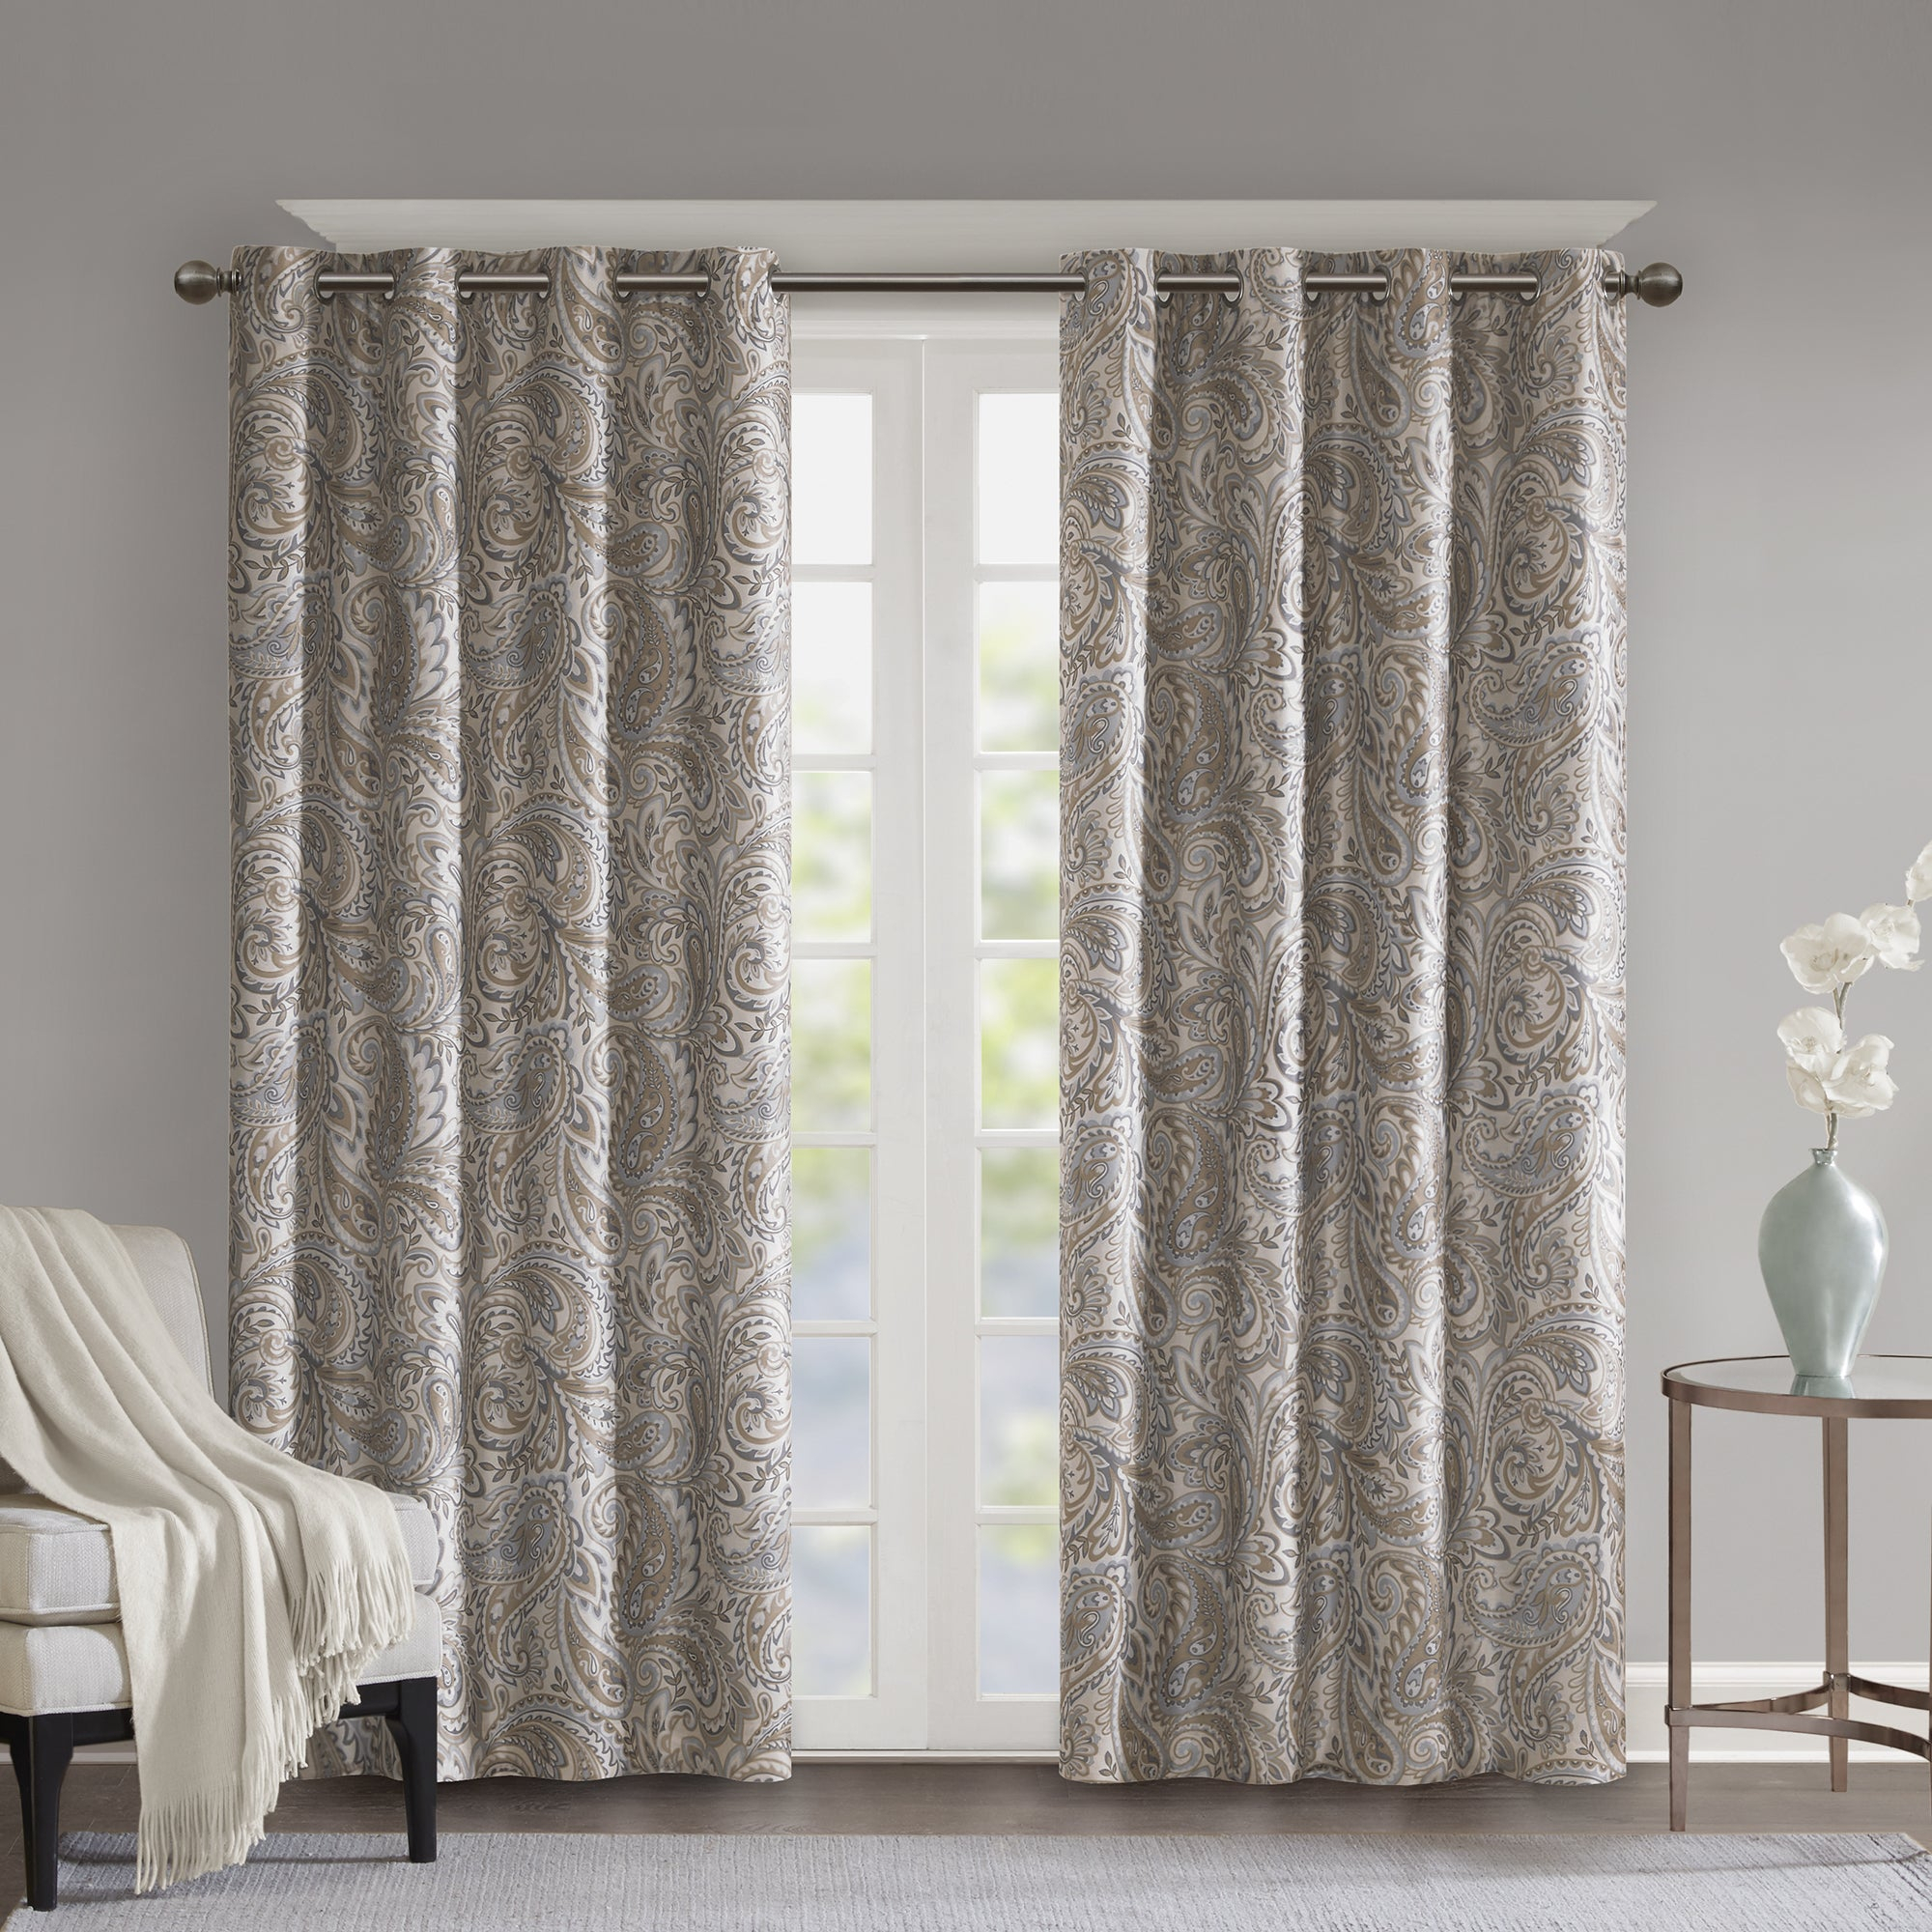 Sunsmart Dahlia Paisley Printed Total Blackout Single Window Curtain Panel In Gracewood Hollow Tucakovic Energy Efficient Fabric Blackout Curtains (View 19 of 20)